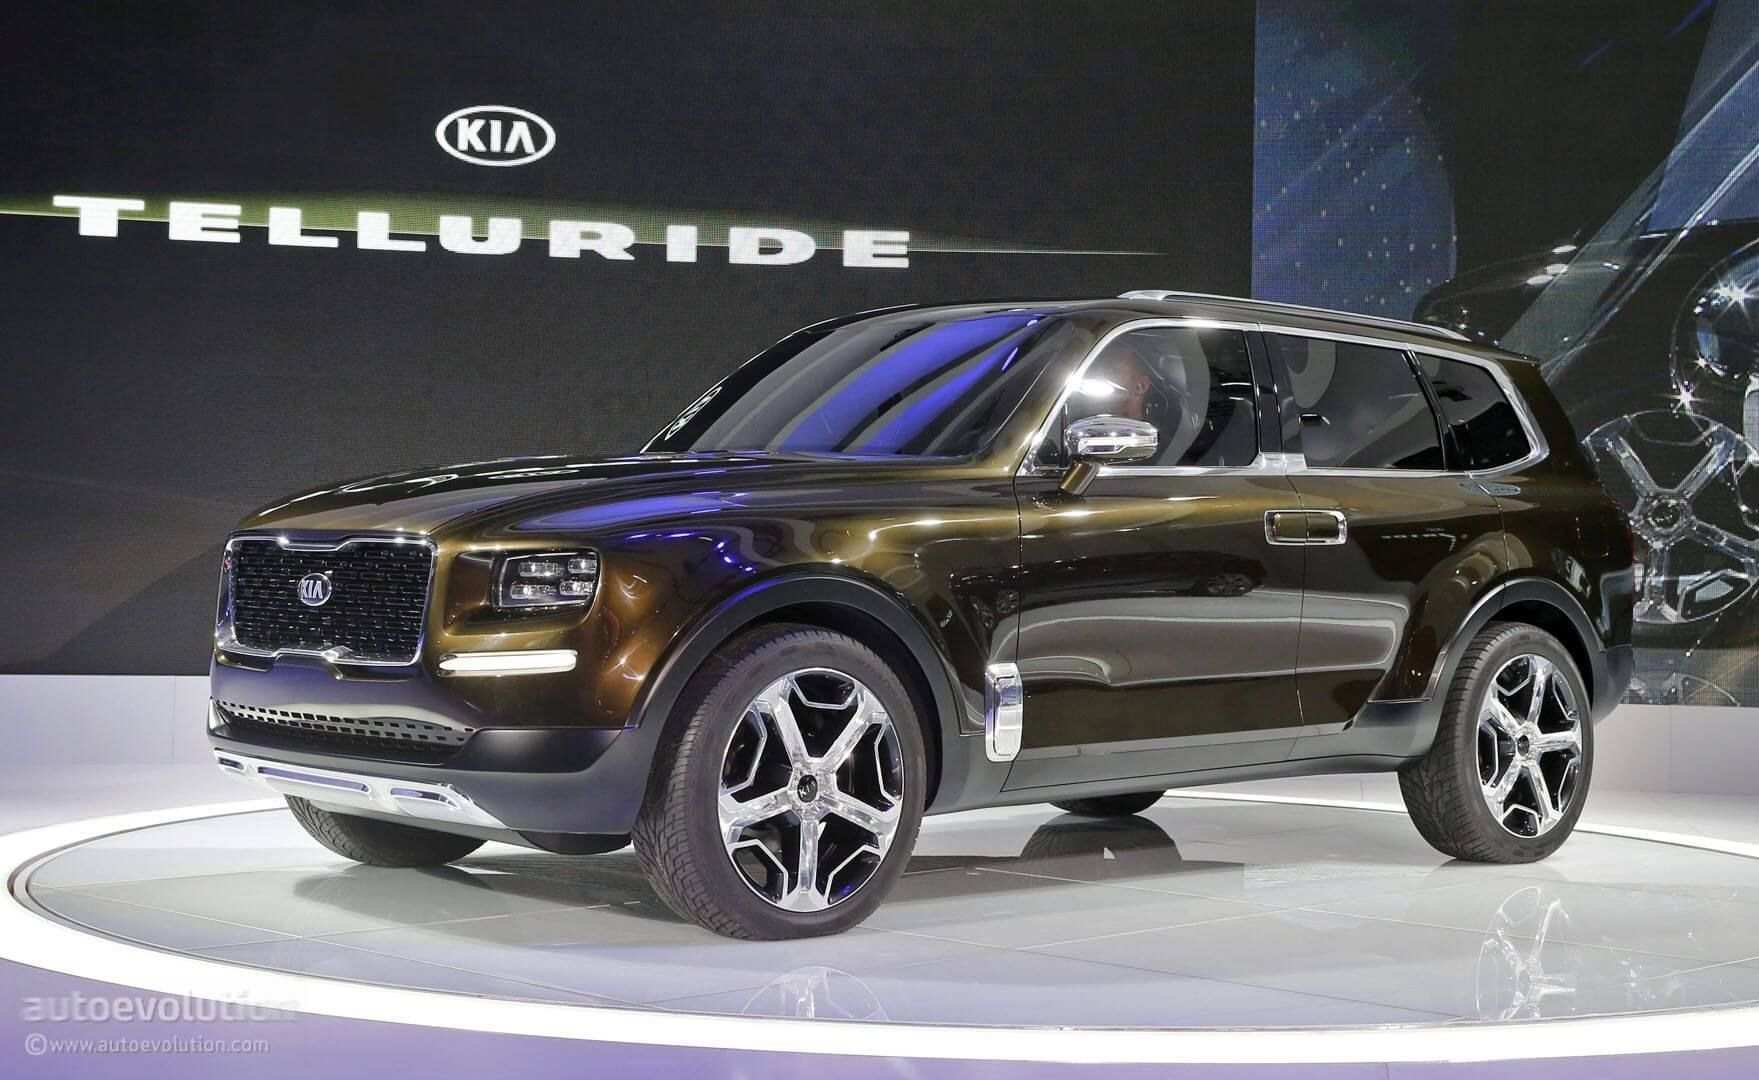 13 All New 2020 Kia Sorento Release Date Style with 2020 Kia Sorento Release Date